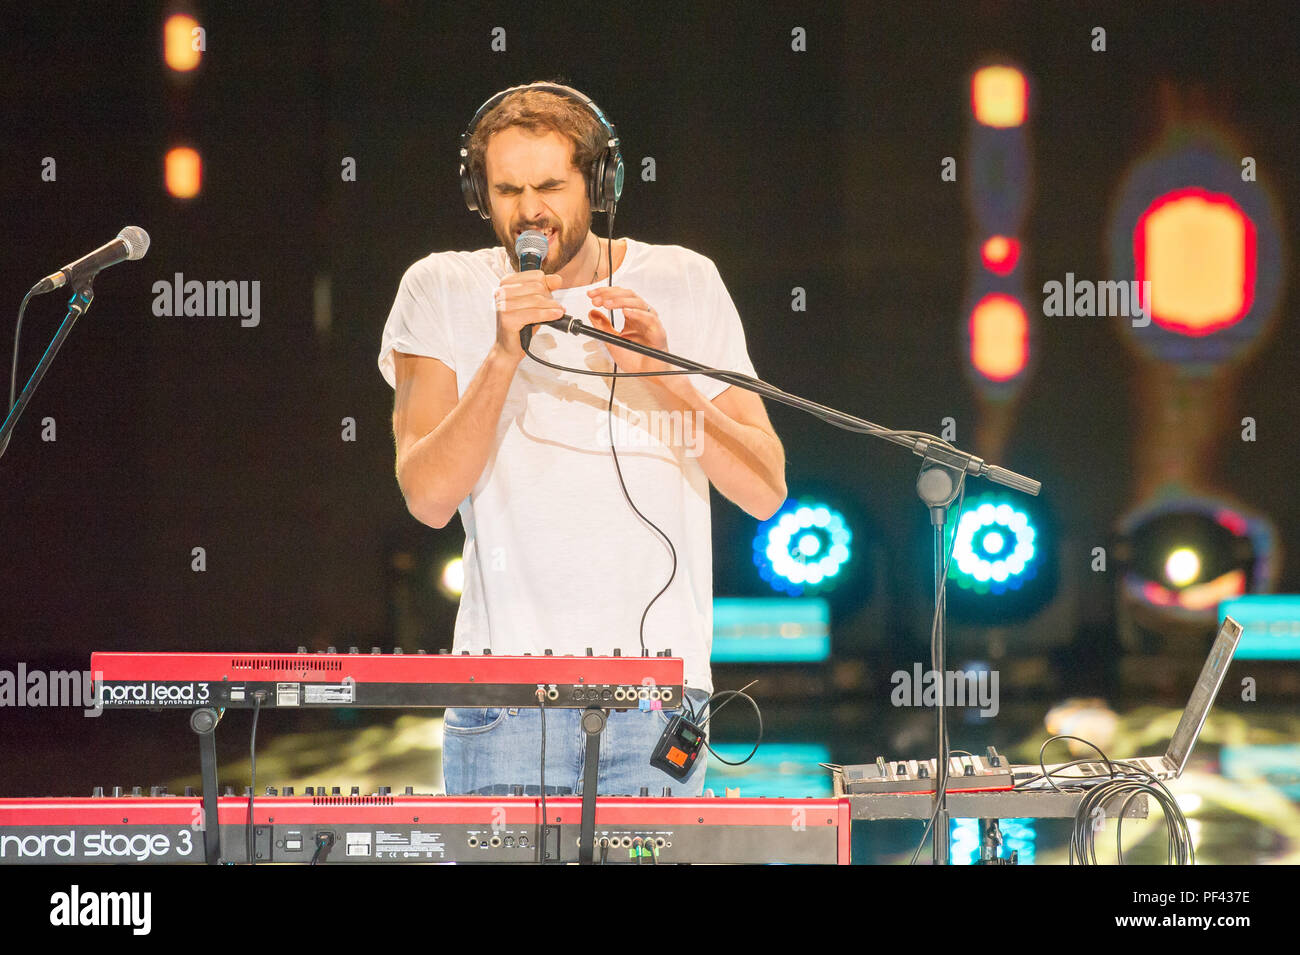 Mihail in concert at Top Of The Top 2018 Sopot Festival in Opera Lesna (Forest Opera) in Sopot, Poland. August 15th 2018 © Wojciech Strozyk / Alamy St - Stock Image